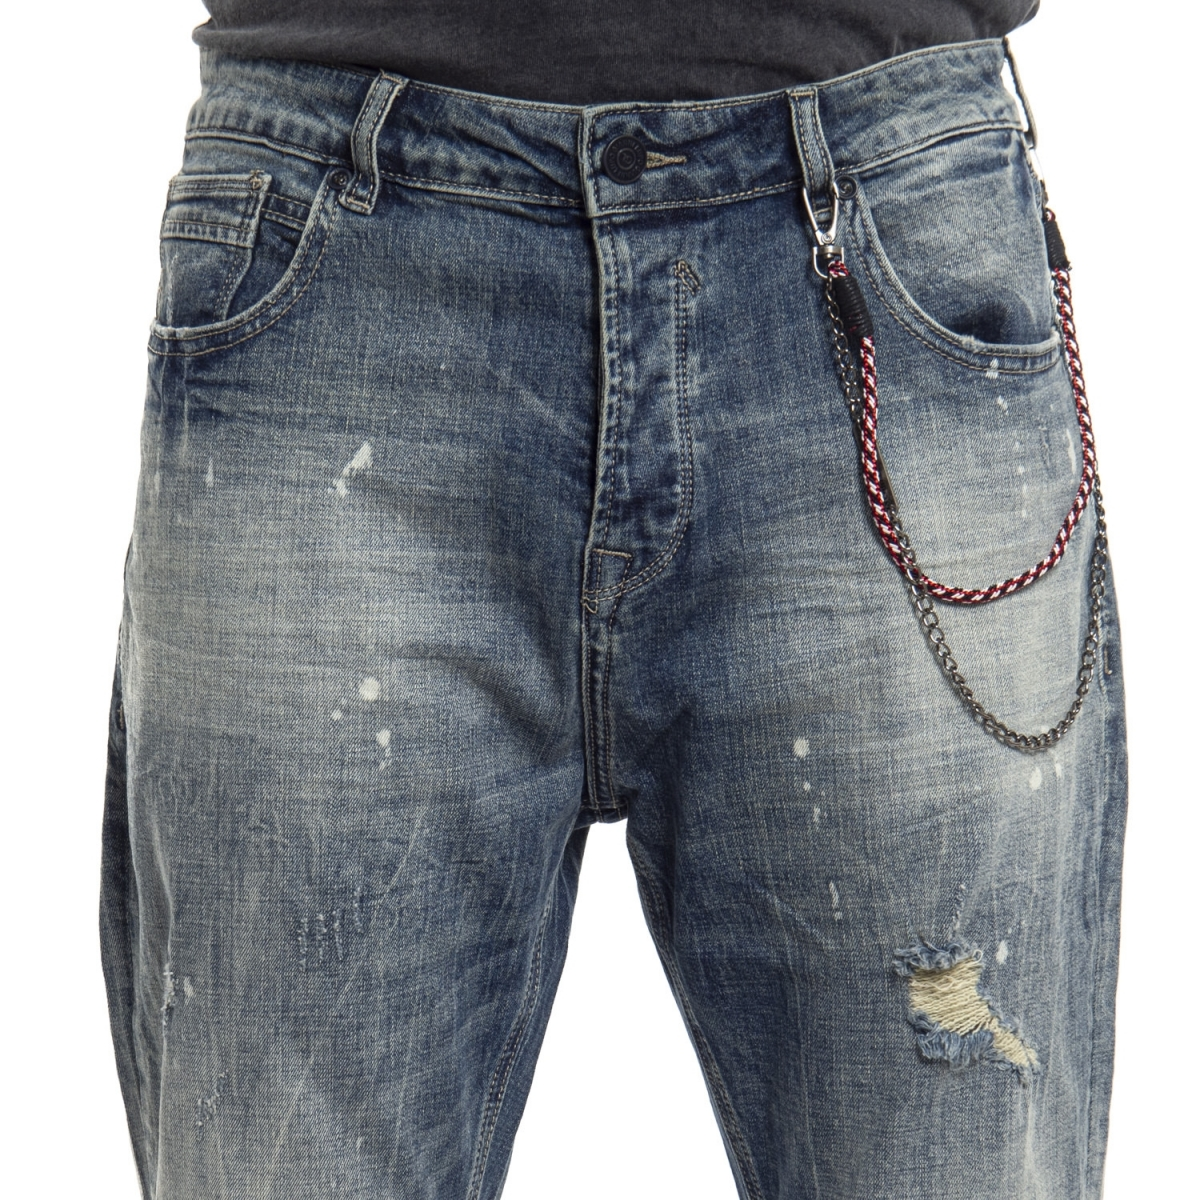 ropa Jeans hombre Jeans GL088F GIANNI LUPO Cafedelmar Shop